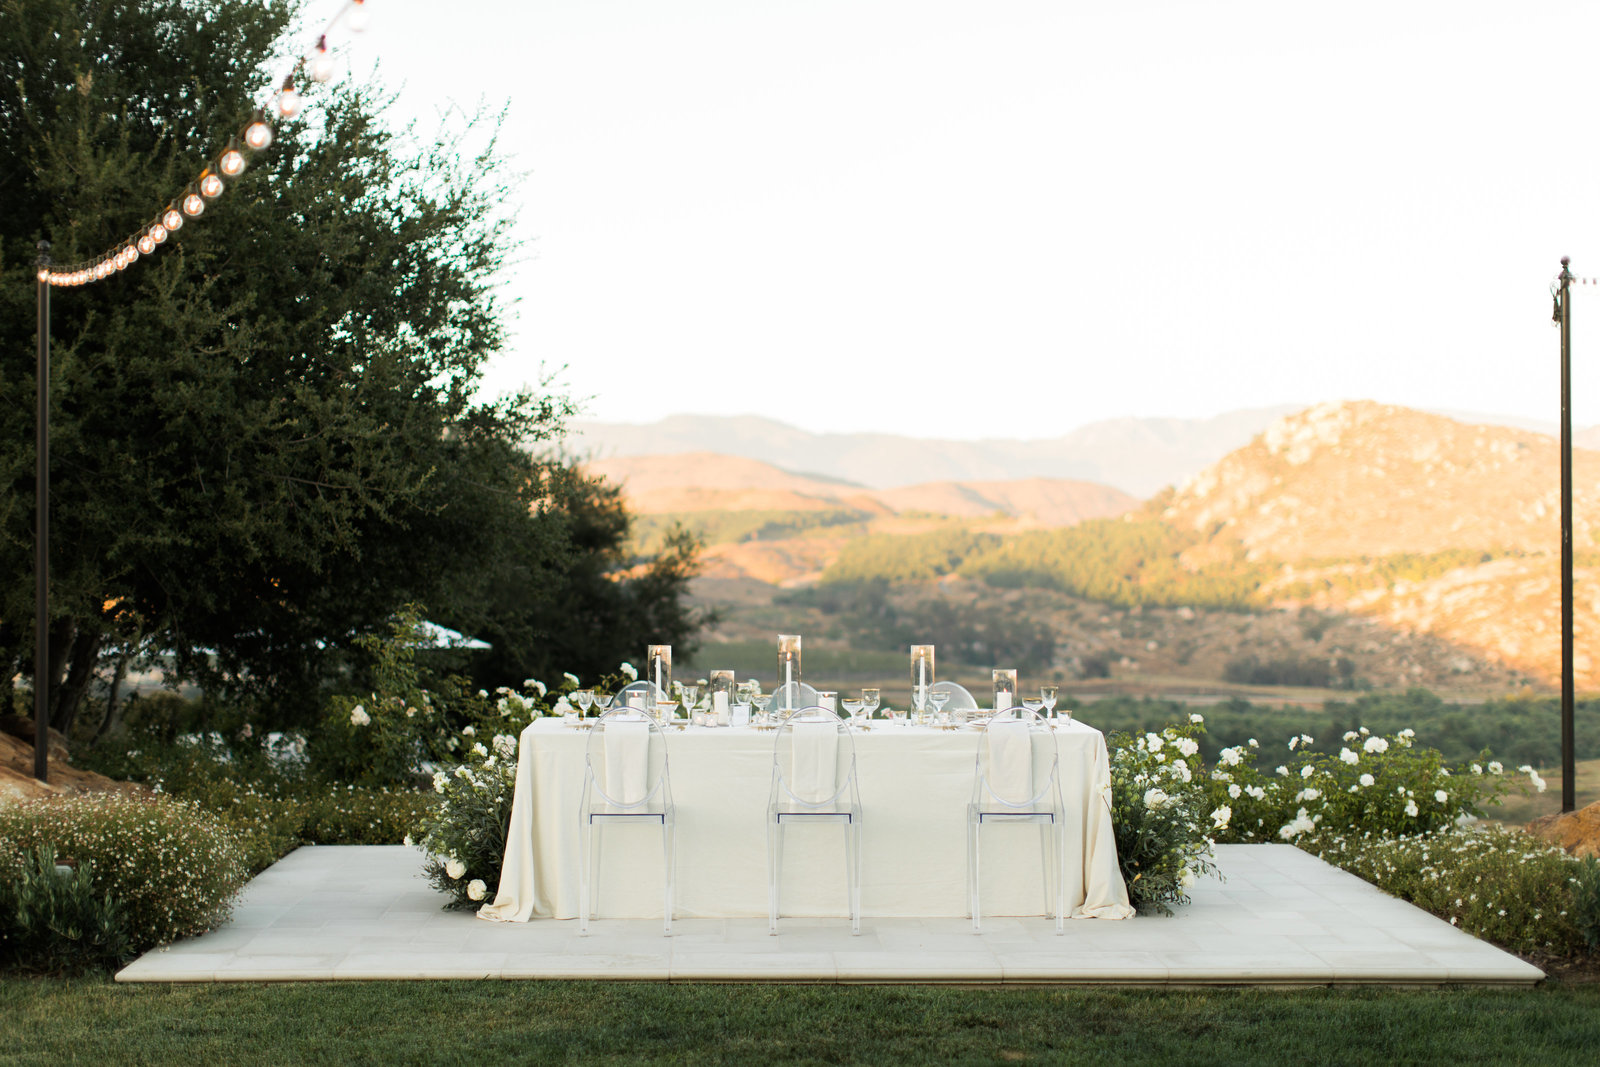 scenic outdoor wedding table